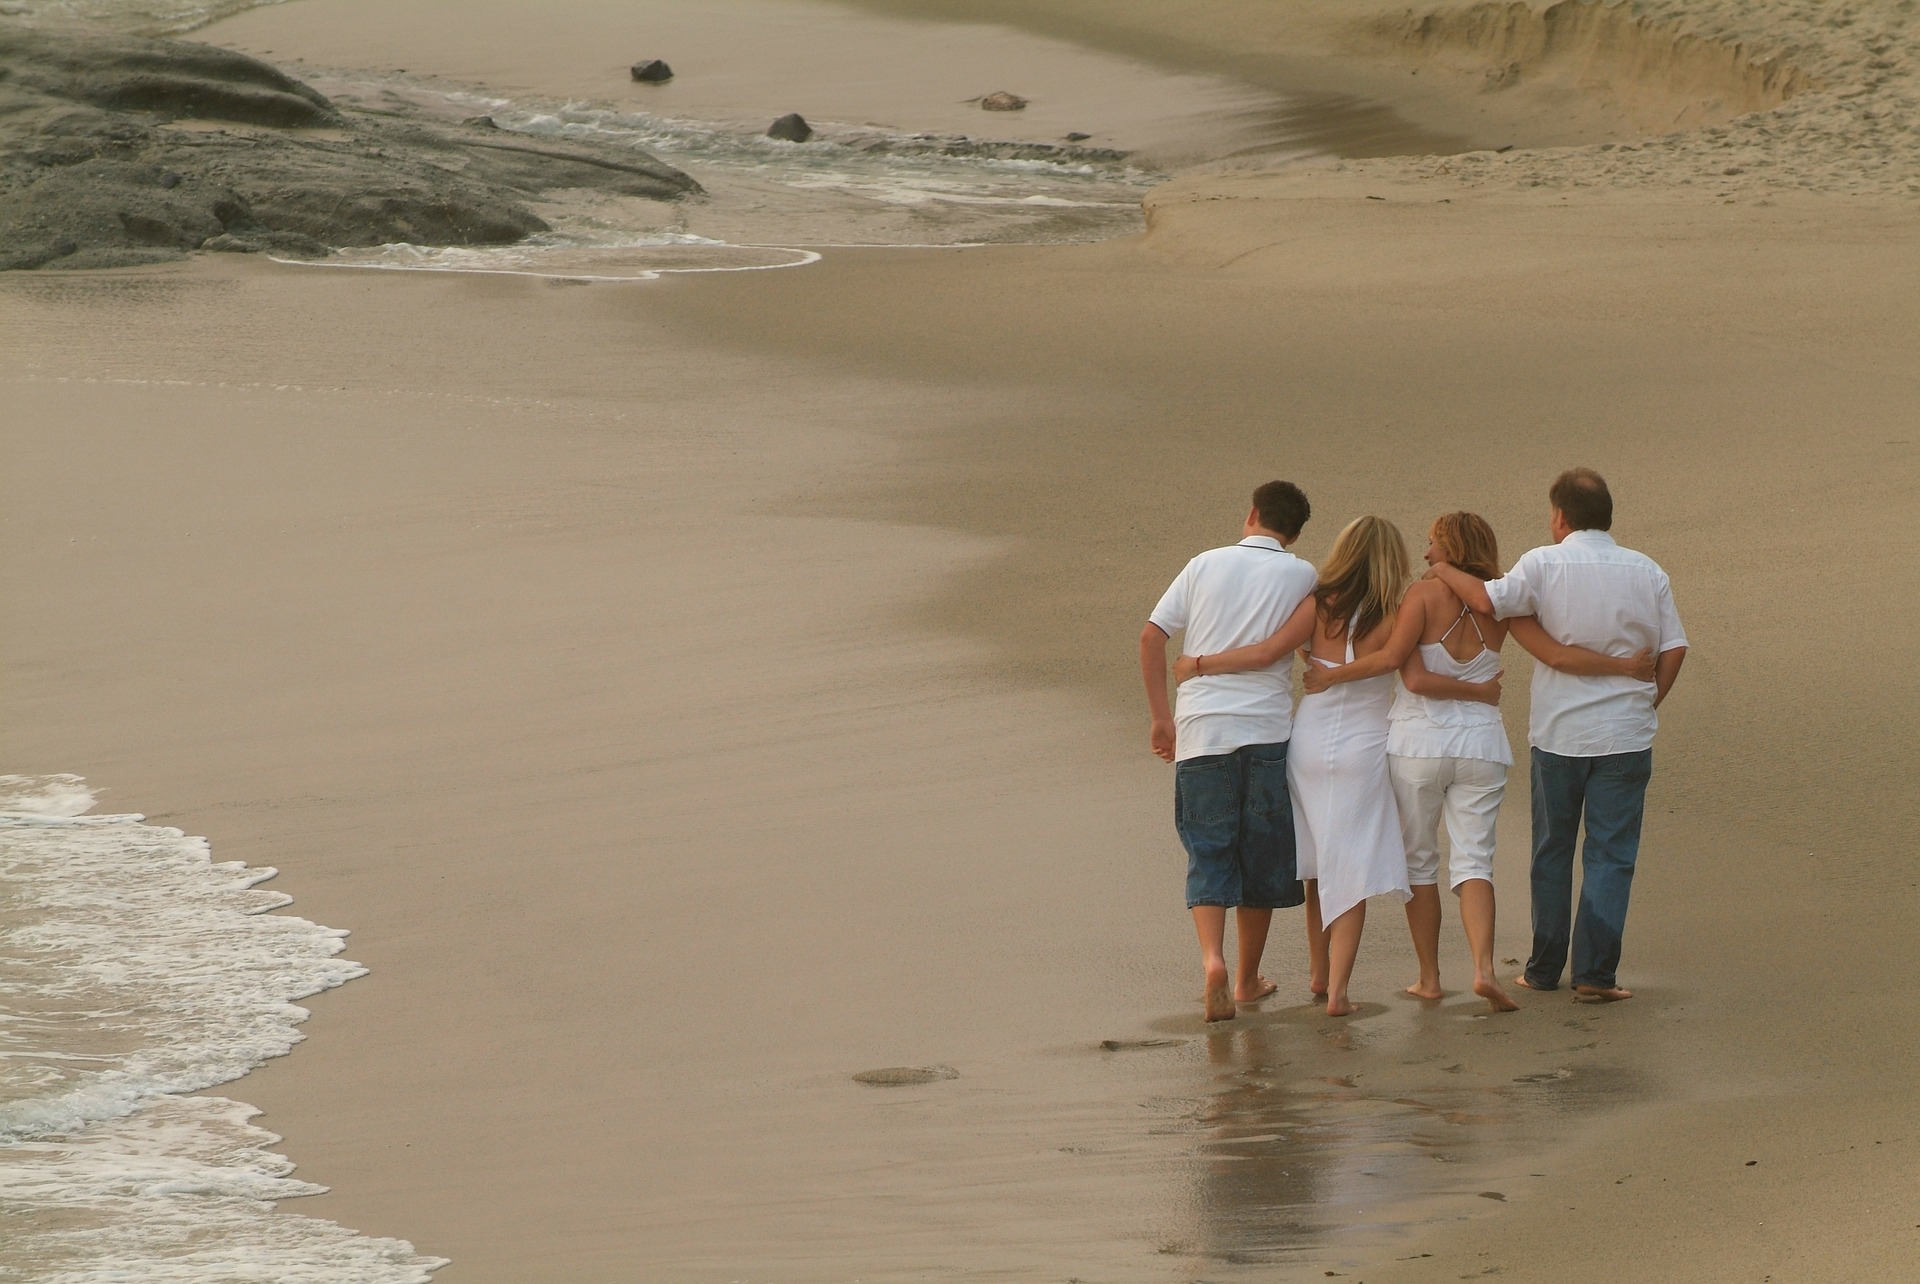 Family Vacation - photo by dave73y = https://pixabay.com/en/family-beach-surf-love-mother-216825/